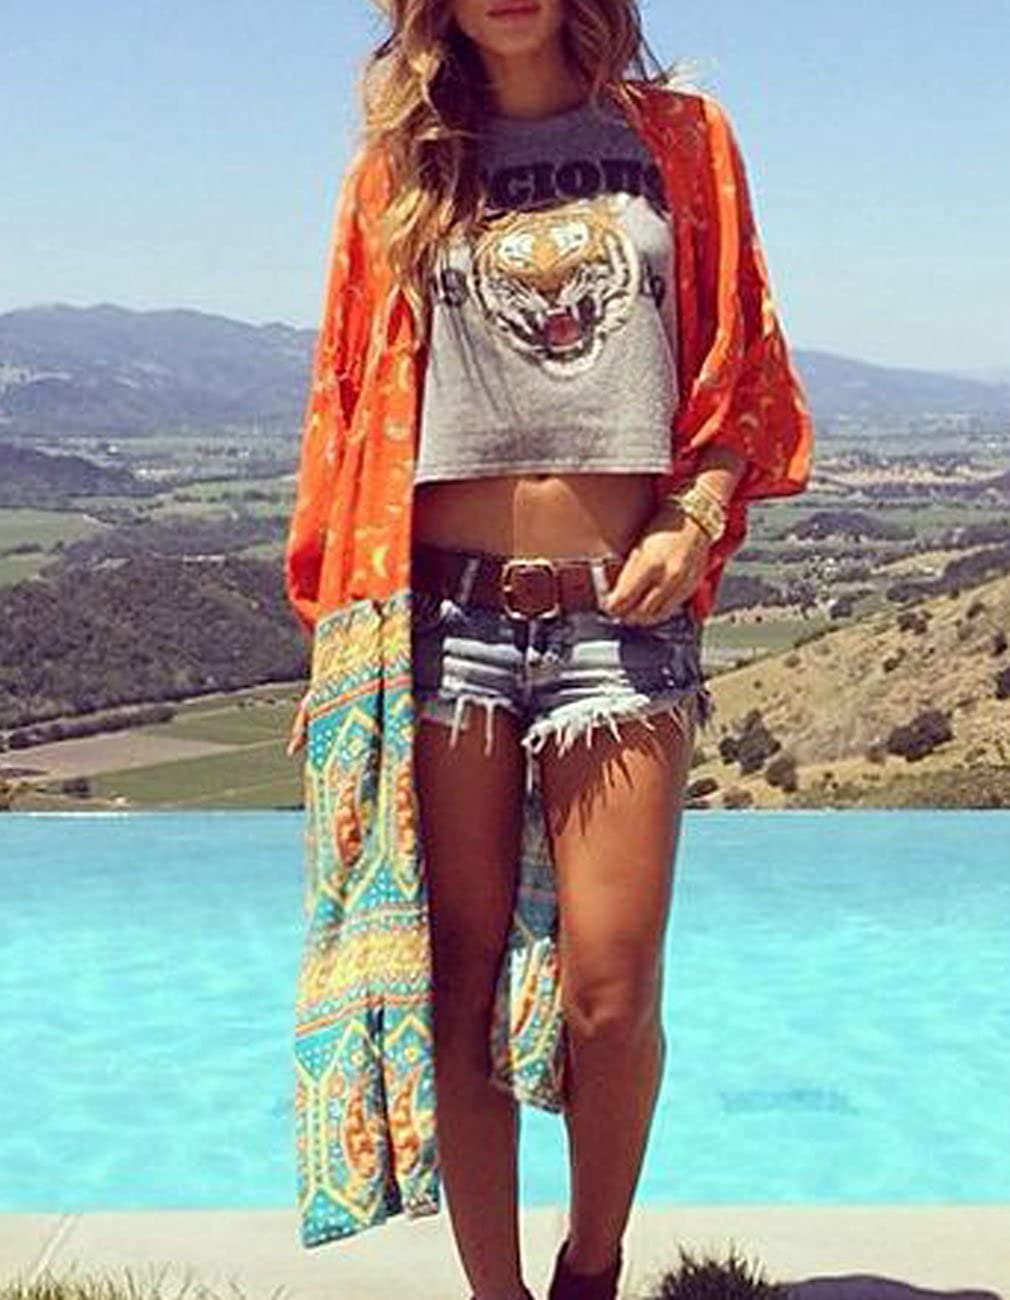 6bbf53f80 Sanifer Women's Boho Floral Printed Open Front Swimsuit Cover up Plus Size  Long Beach Cover up Kimono (Dark Orange, One Size) at Amazon Women's  Clothing ...